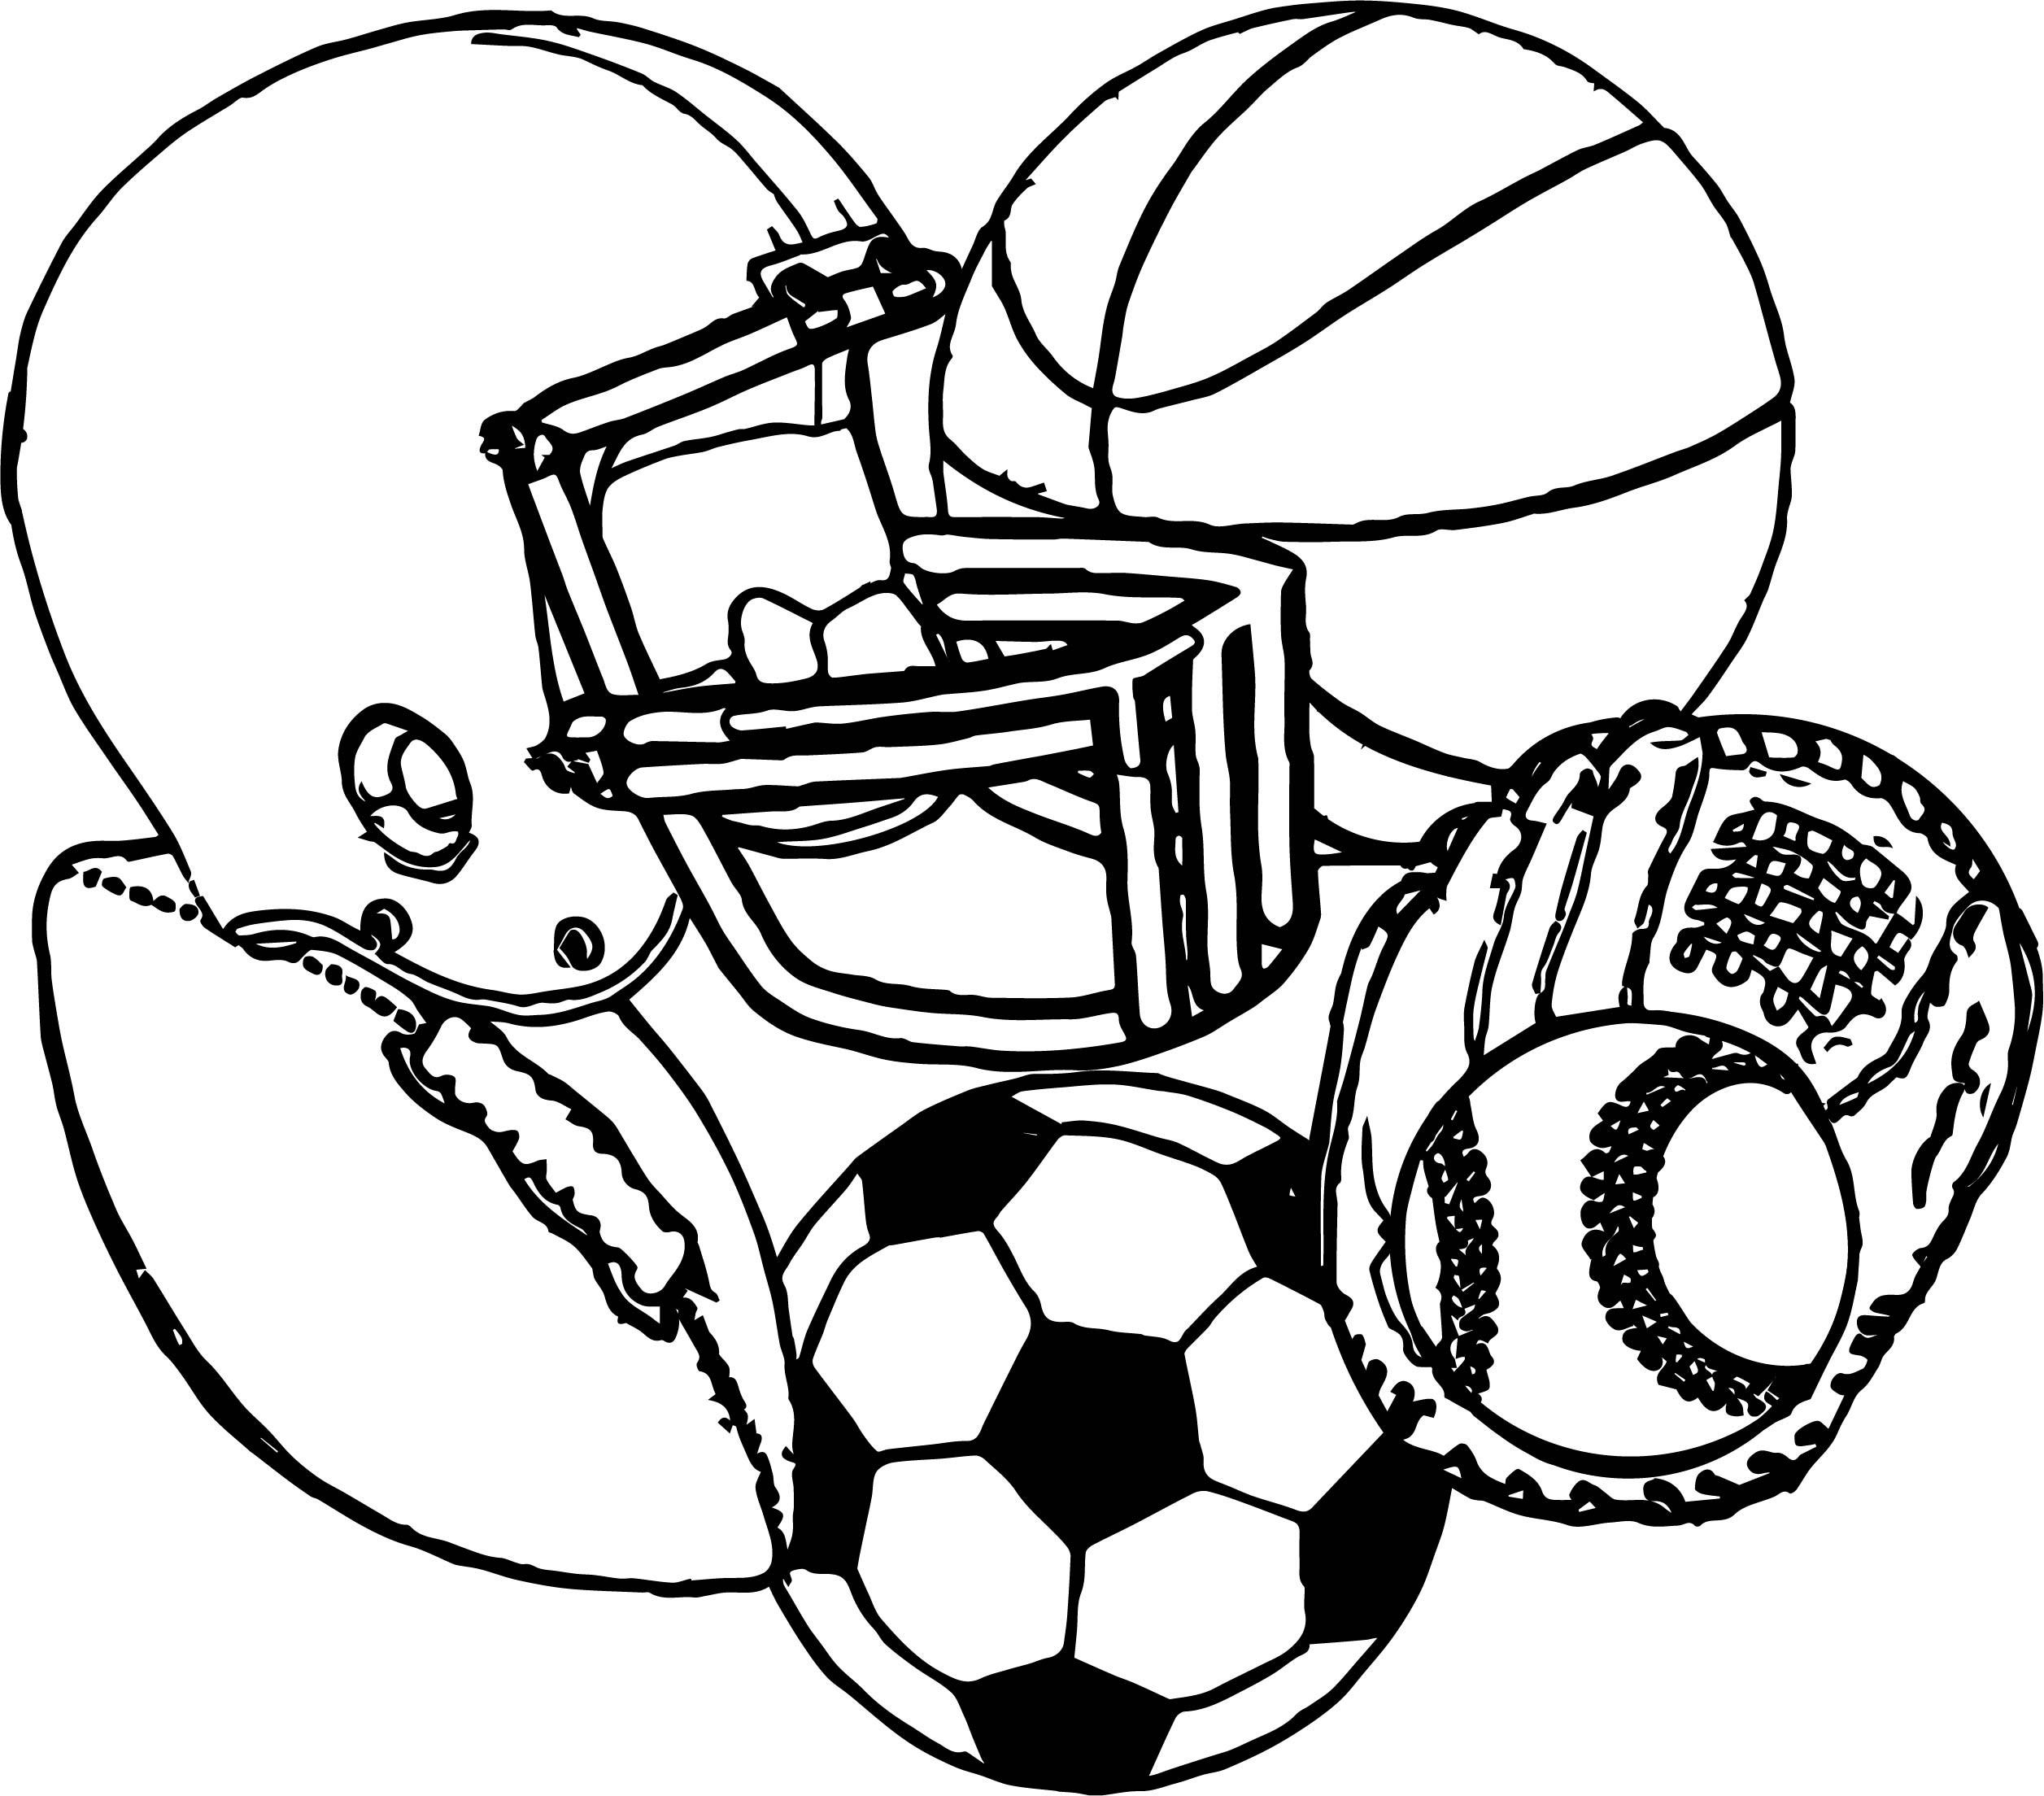 2513x2208 Sports Coloring Pages Beautiful Equipment Football Baseball